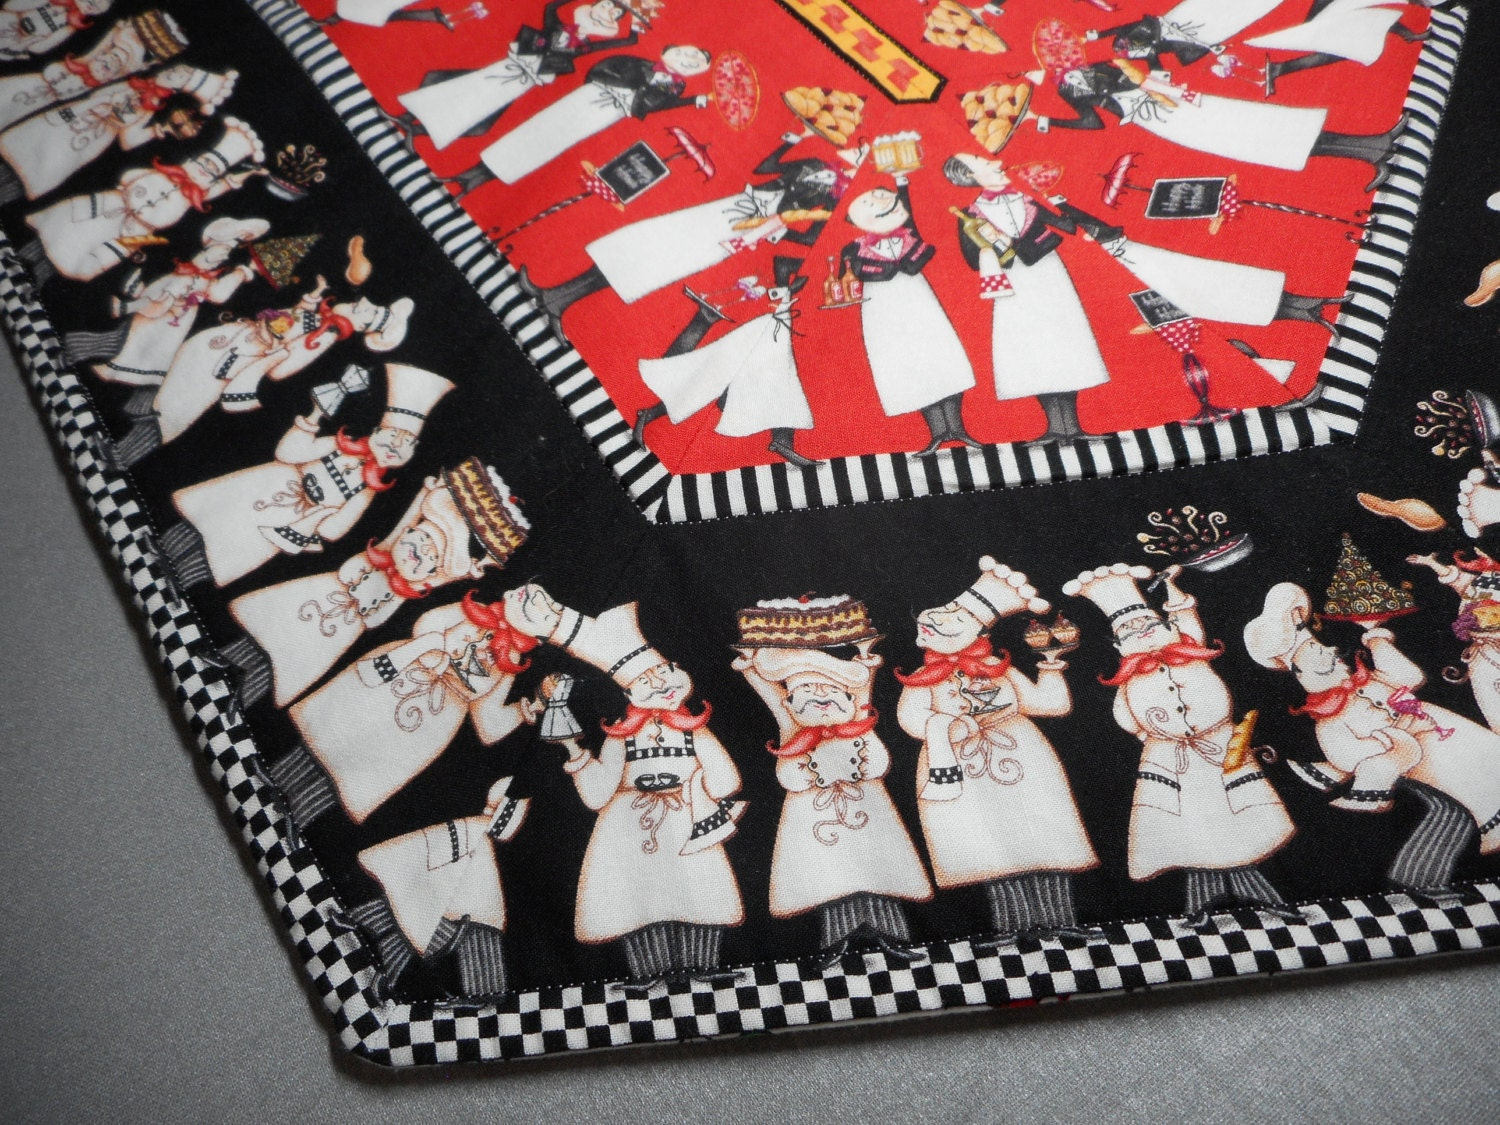 Bon Appetit Chef Quilted Table Runner Dining Room Decor Parisian Red Black Kitchen Linen